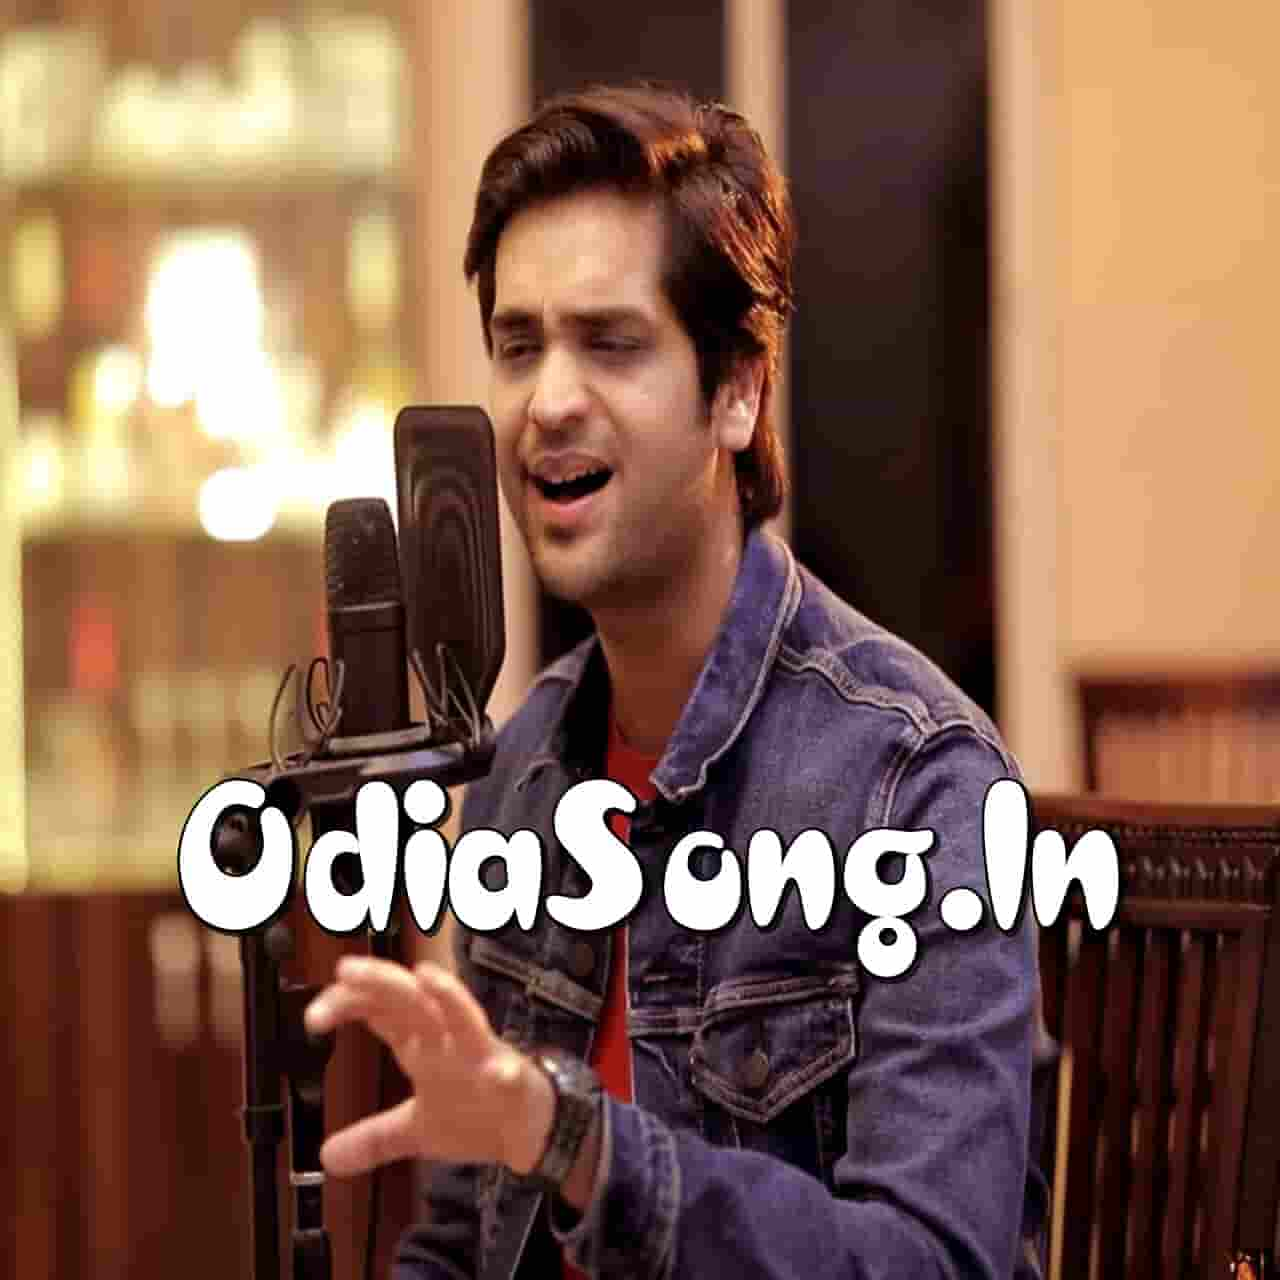 Lemme Fall For You - Odia Song (Swayam Padhi)